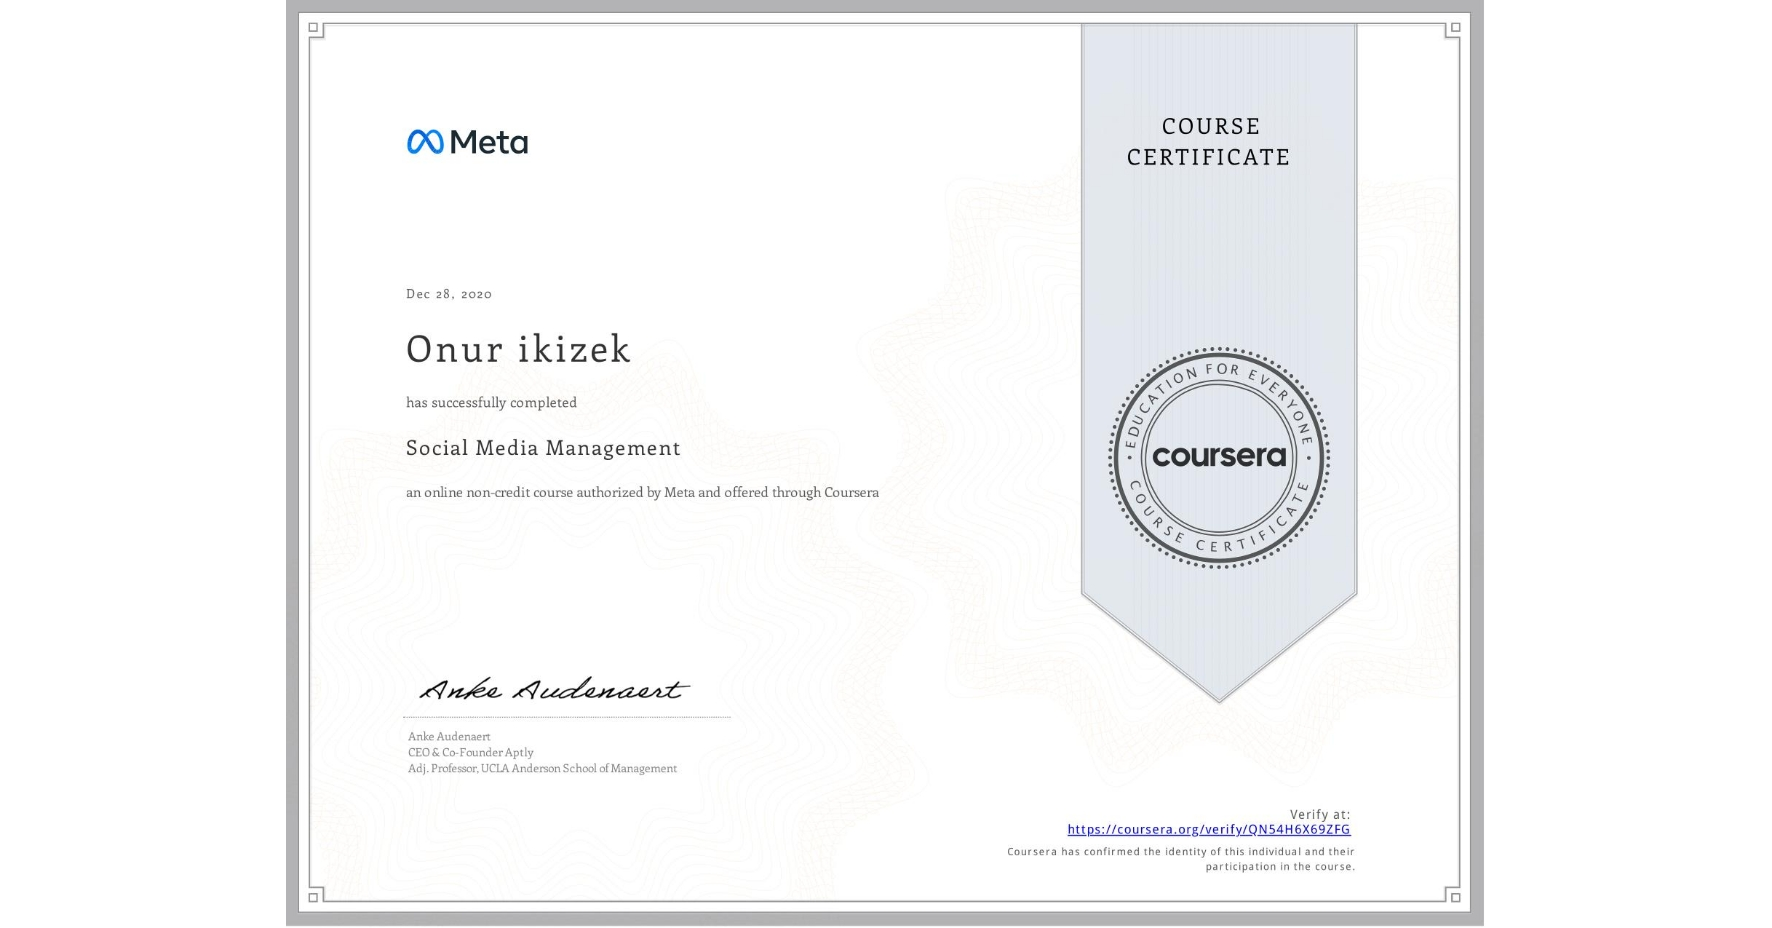 View certificate for Onur ikizek, Social Media Management , an online non-credit course authorized by Facebook and offered through Coursera